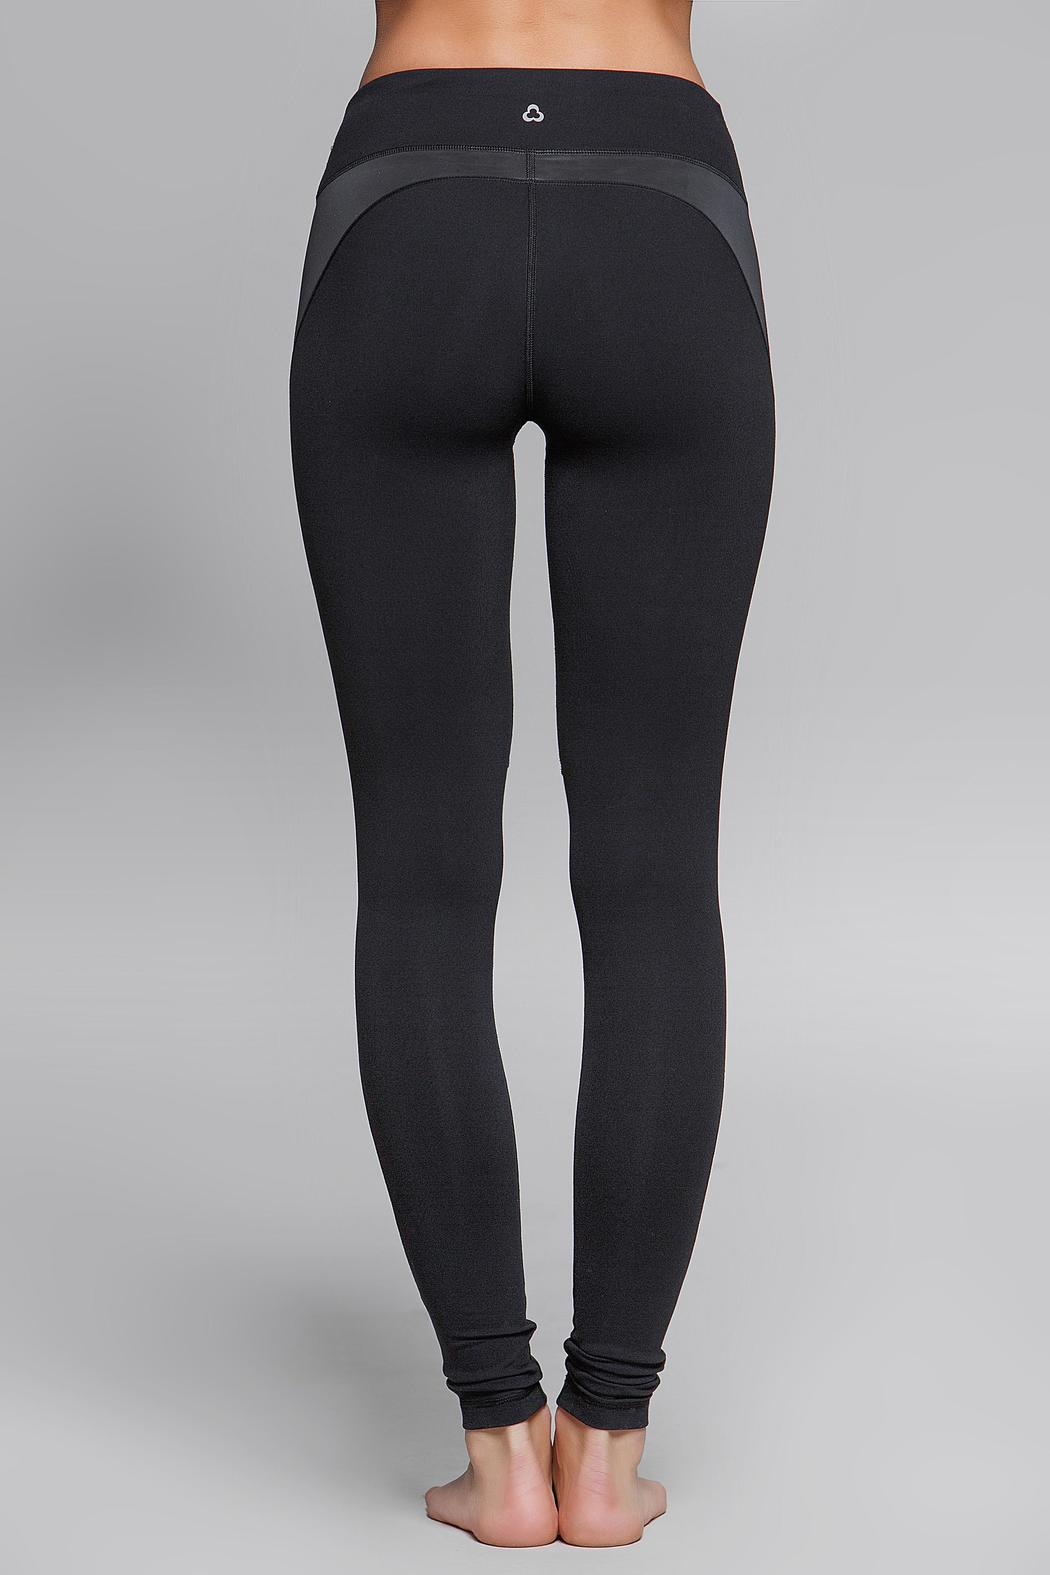 Titika Active Couture Eclipse Reflective Legging - Back Cropped Image